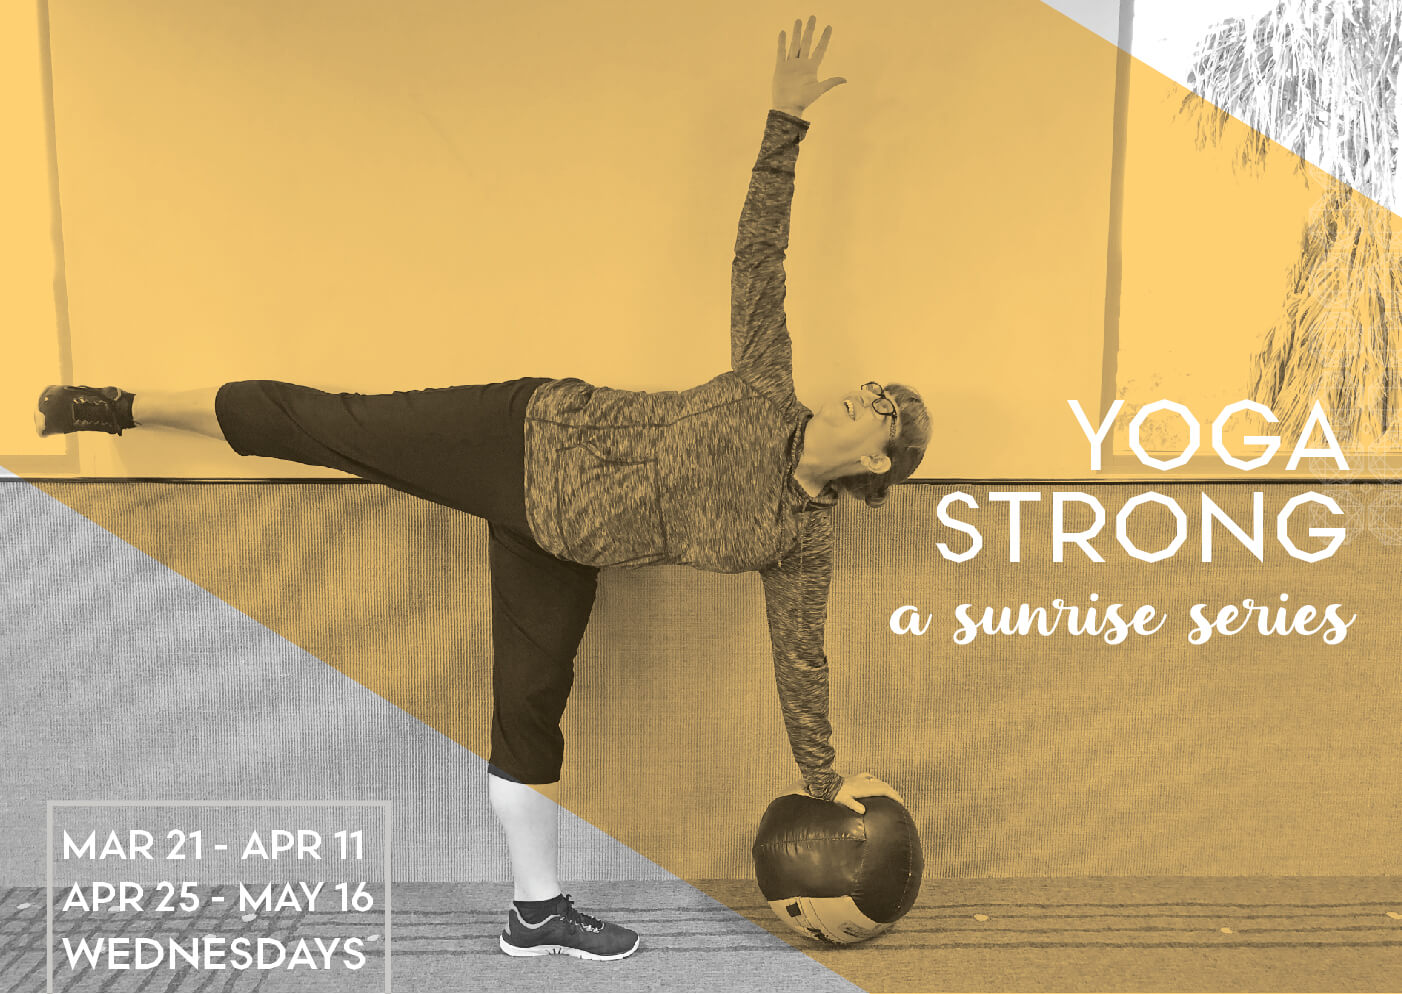 Yoga Strong: A Sunrise Series